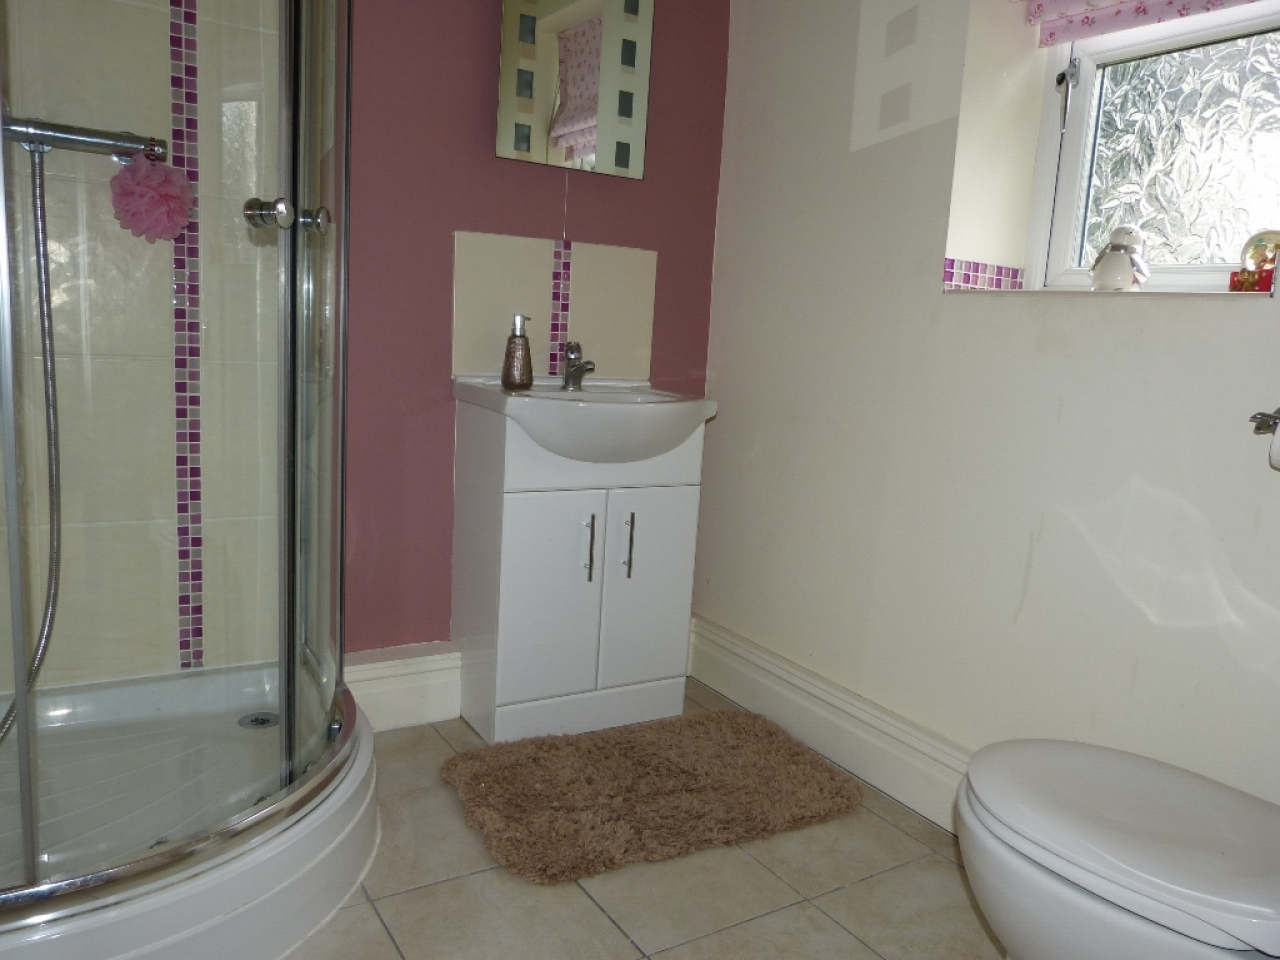 5 bedroom detached house SSTC in Abergele - Photograph 19